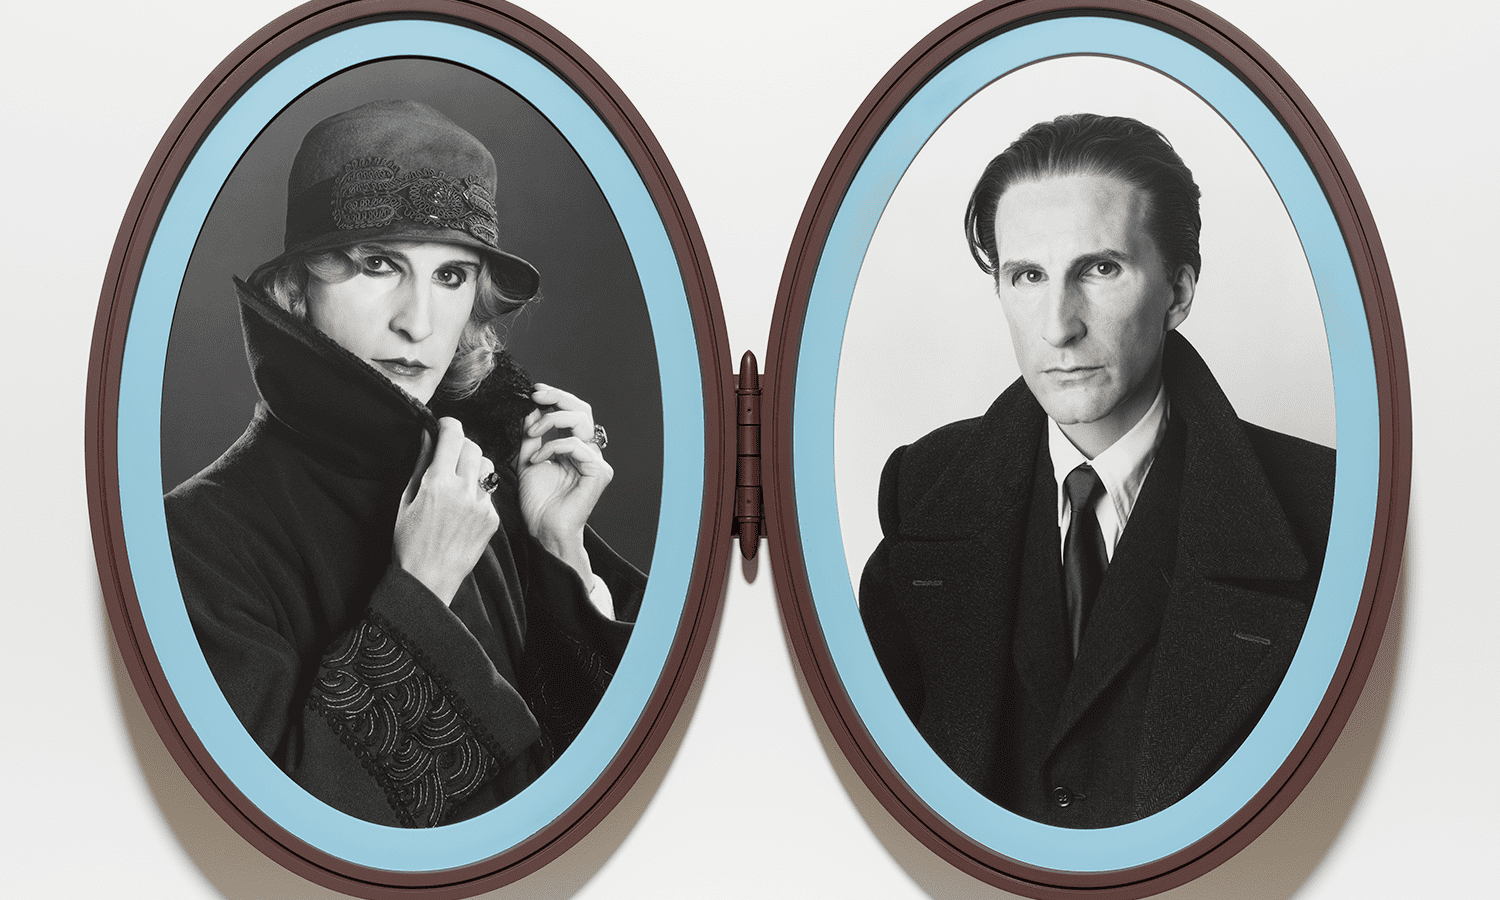 Gillian Wearing (b. 1963, Britain), Me as Madame and Monsieur Duchamp, 2018, bromide prints in articulated frame. © Gillian Wearing, Courtesy of the artist, Maureen Paley, London, Tanya Bonakdar Gallery, New York / Los Angeles, and Regen Projects, Los Angeles